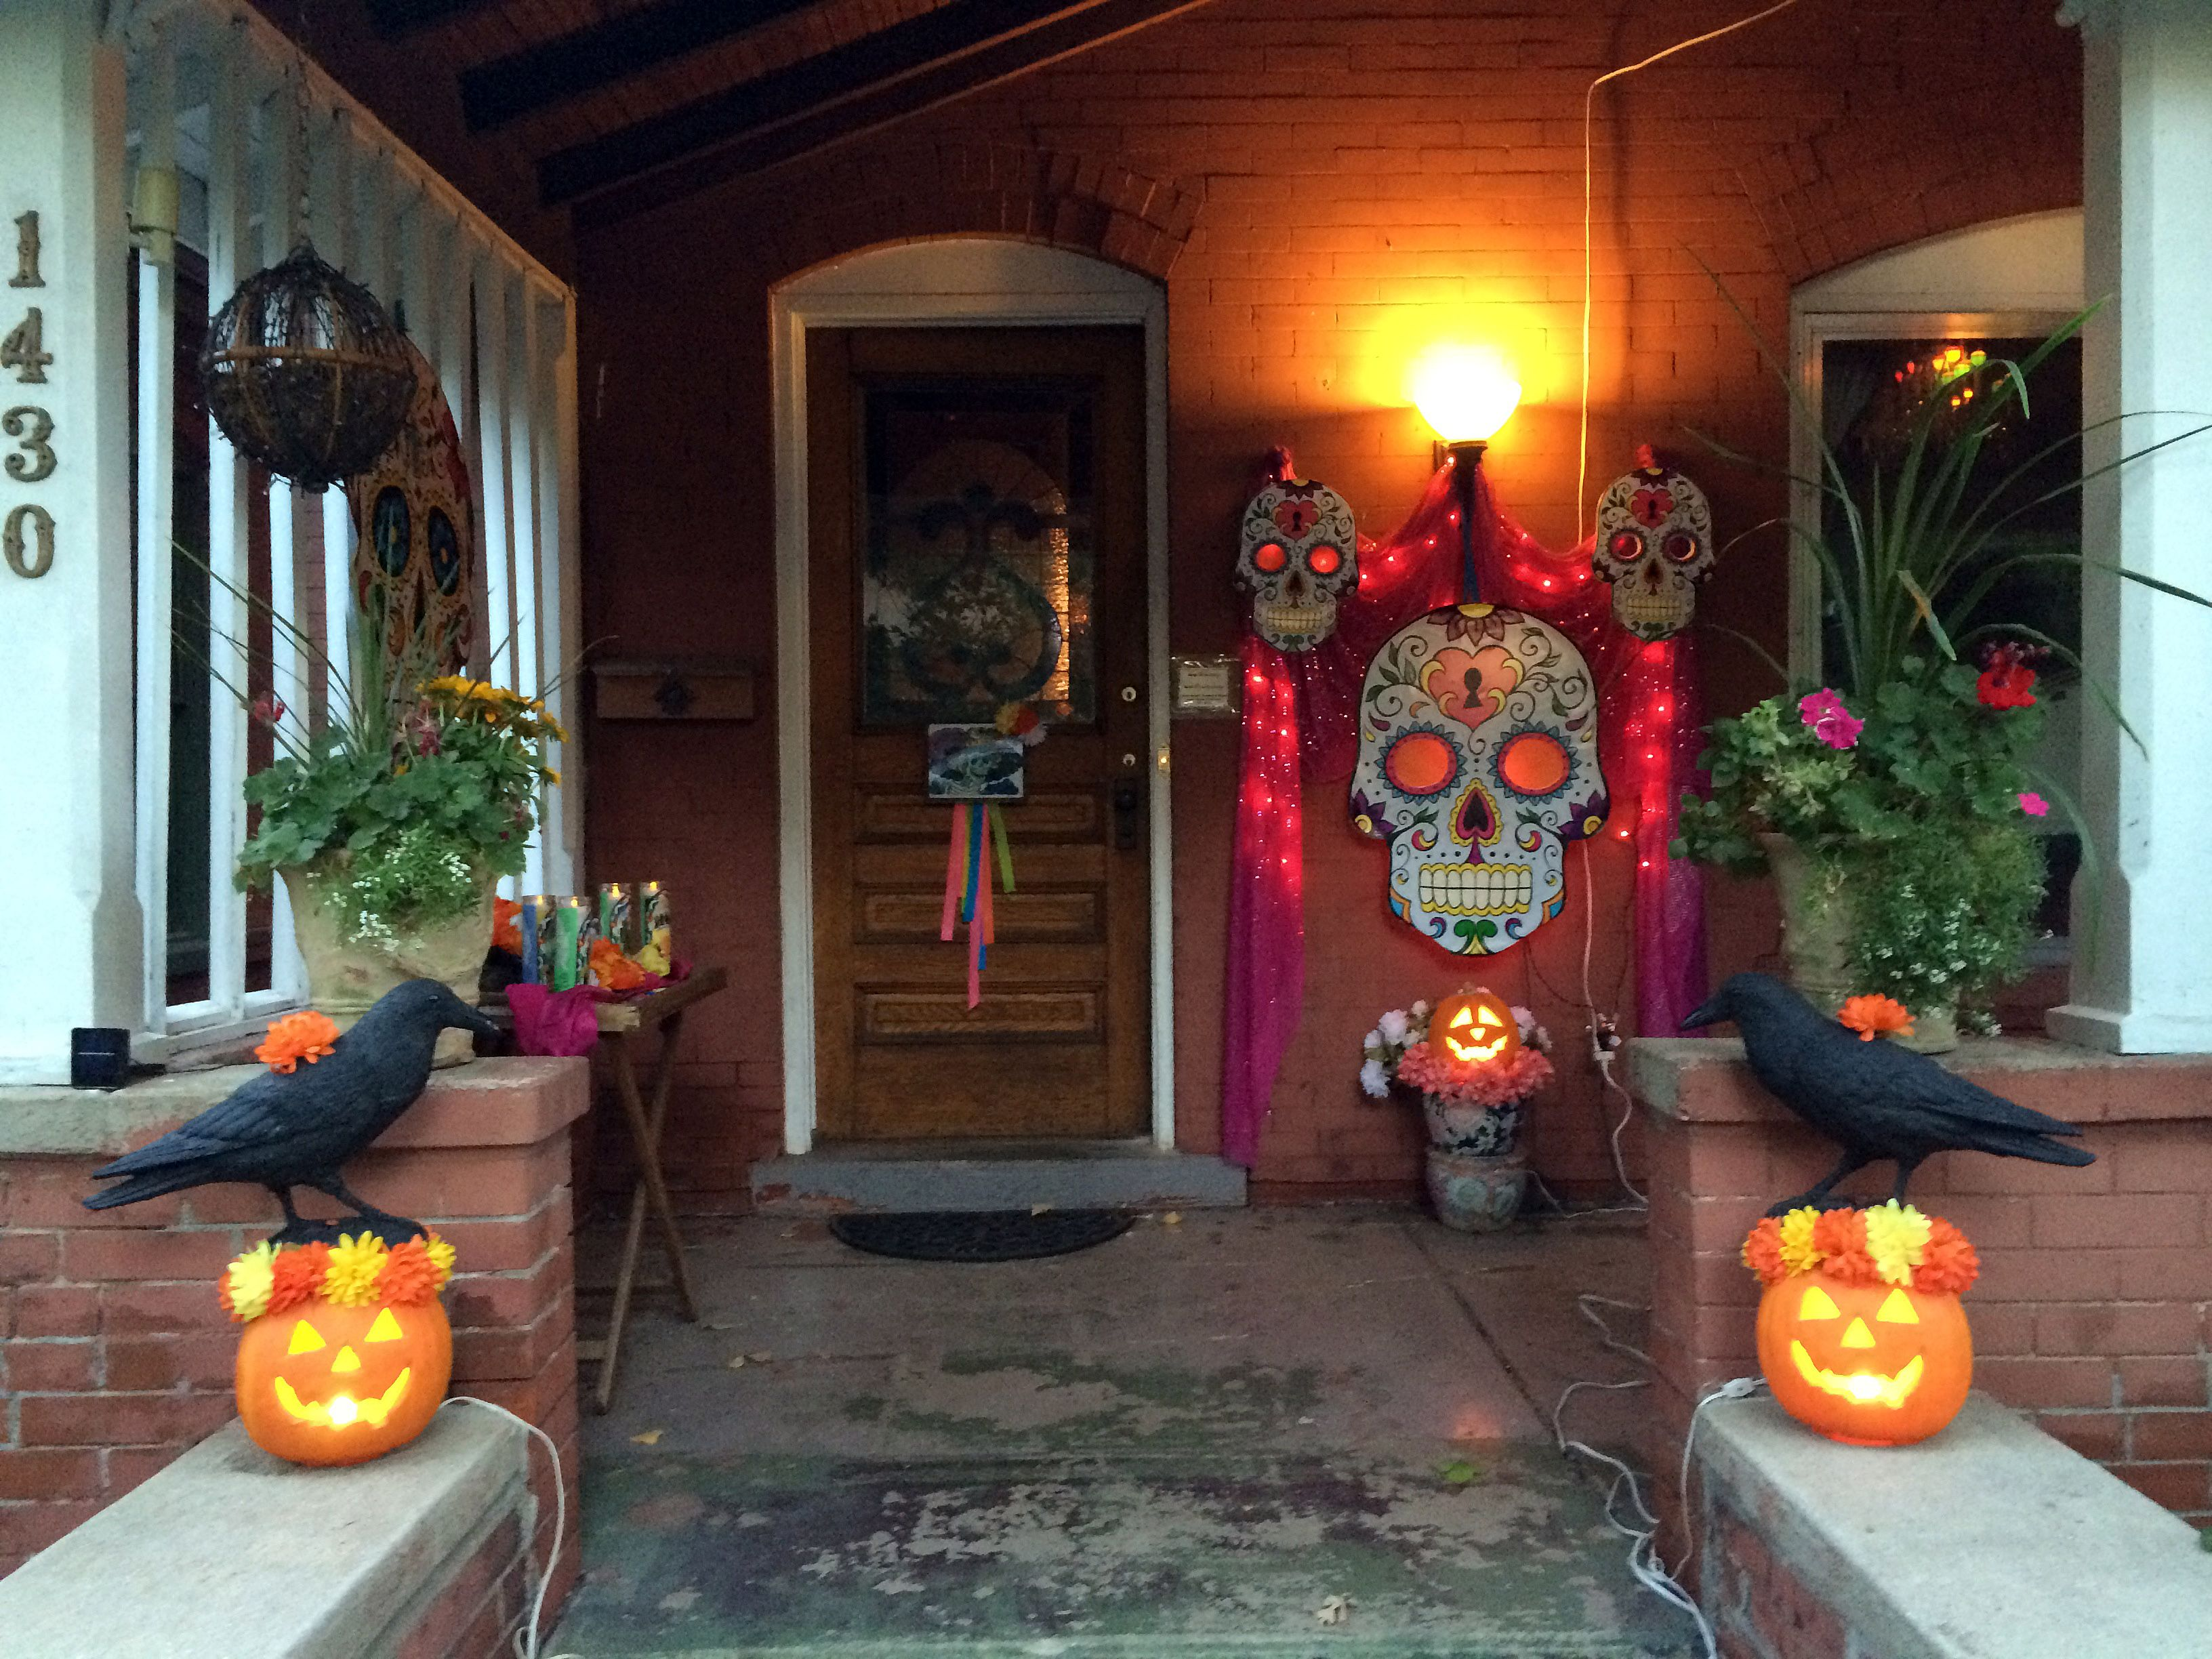 Outdoor decor discount - Explore Outdoor Decorations And More